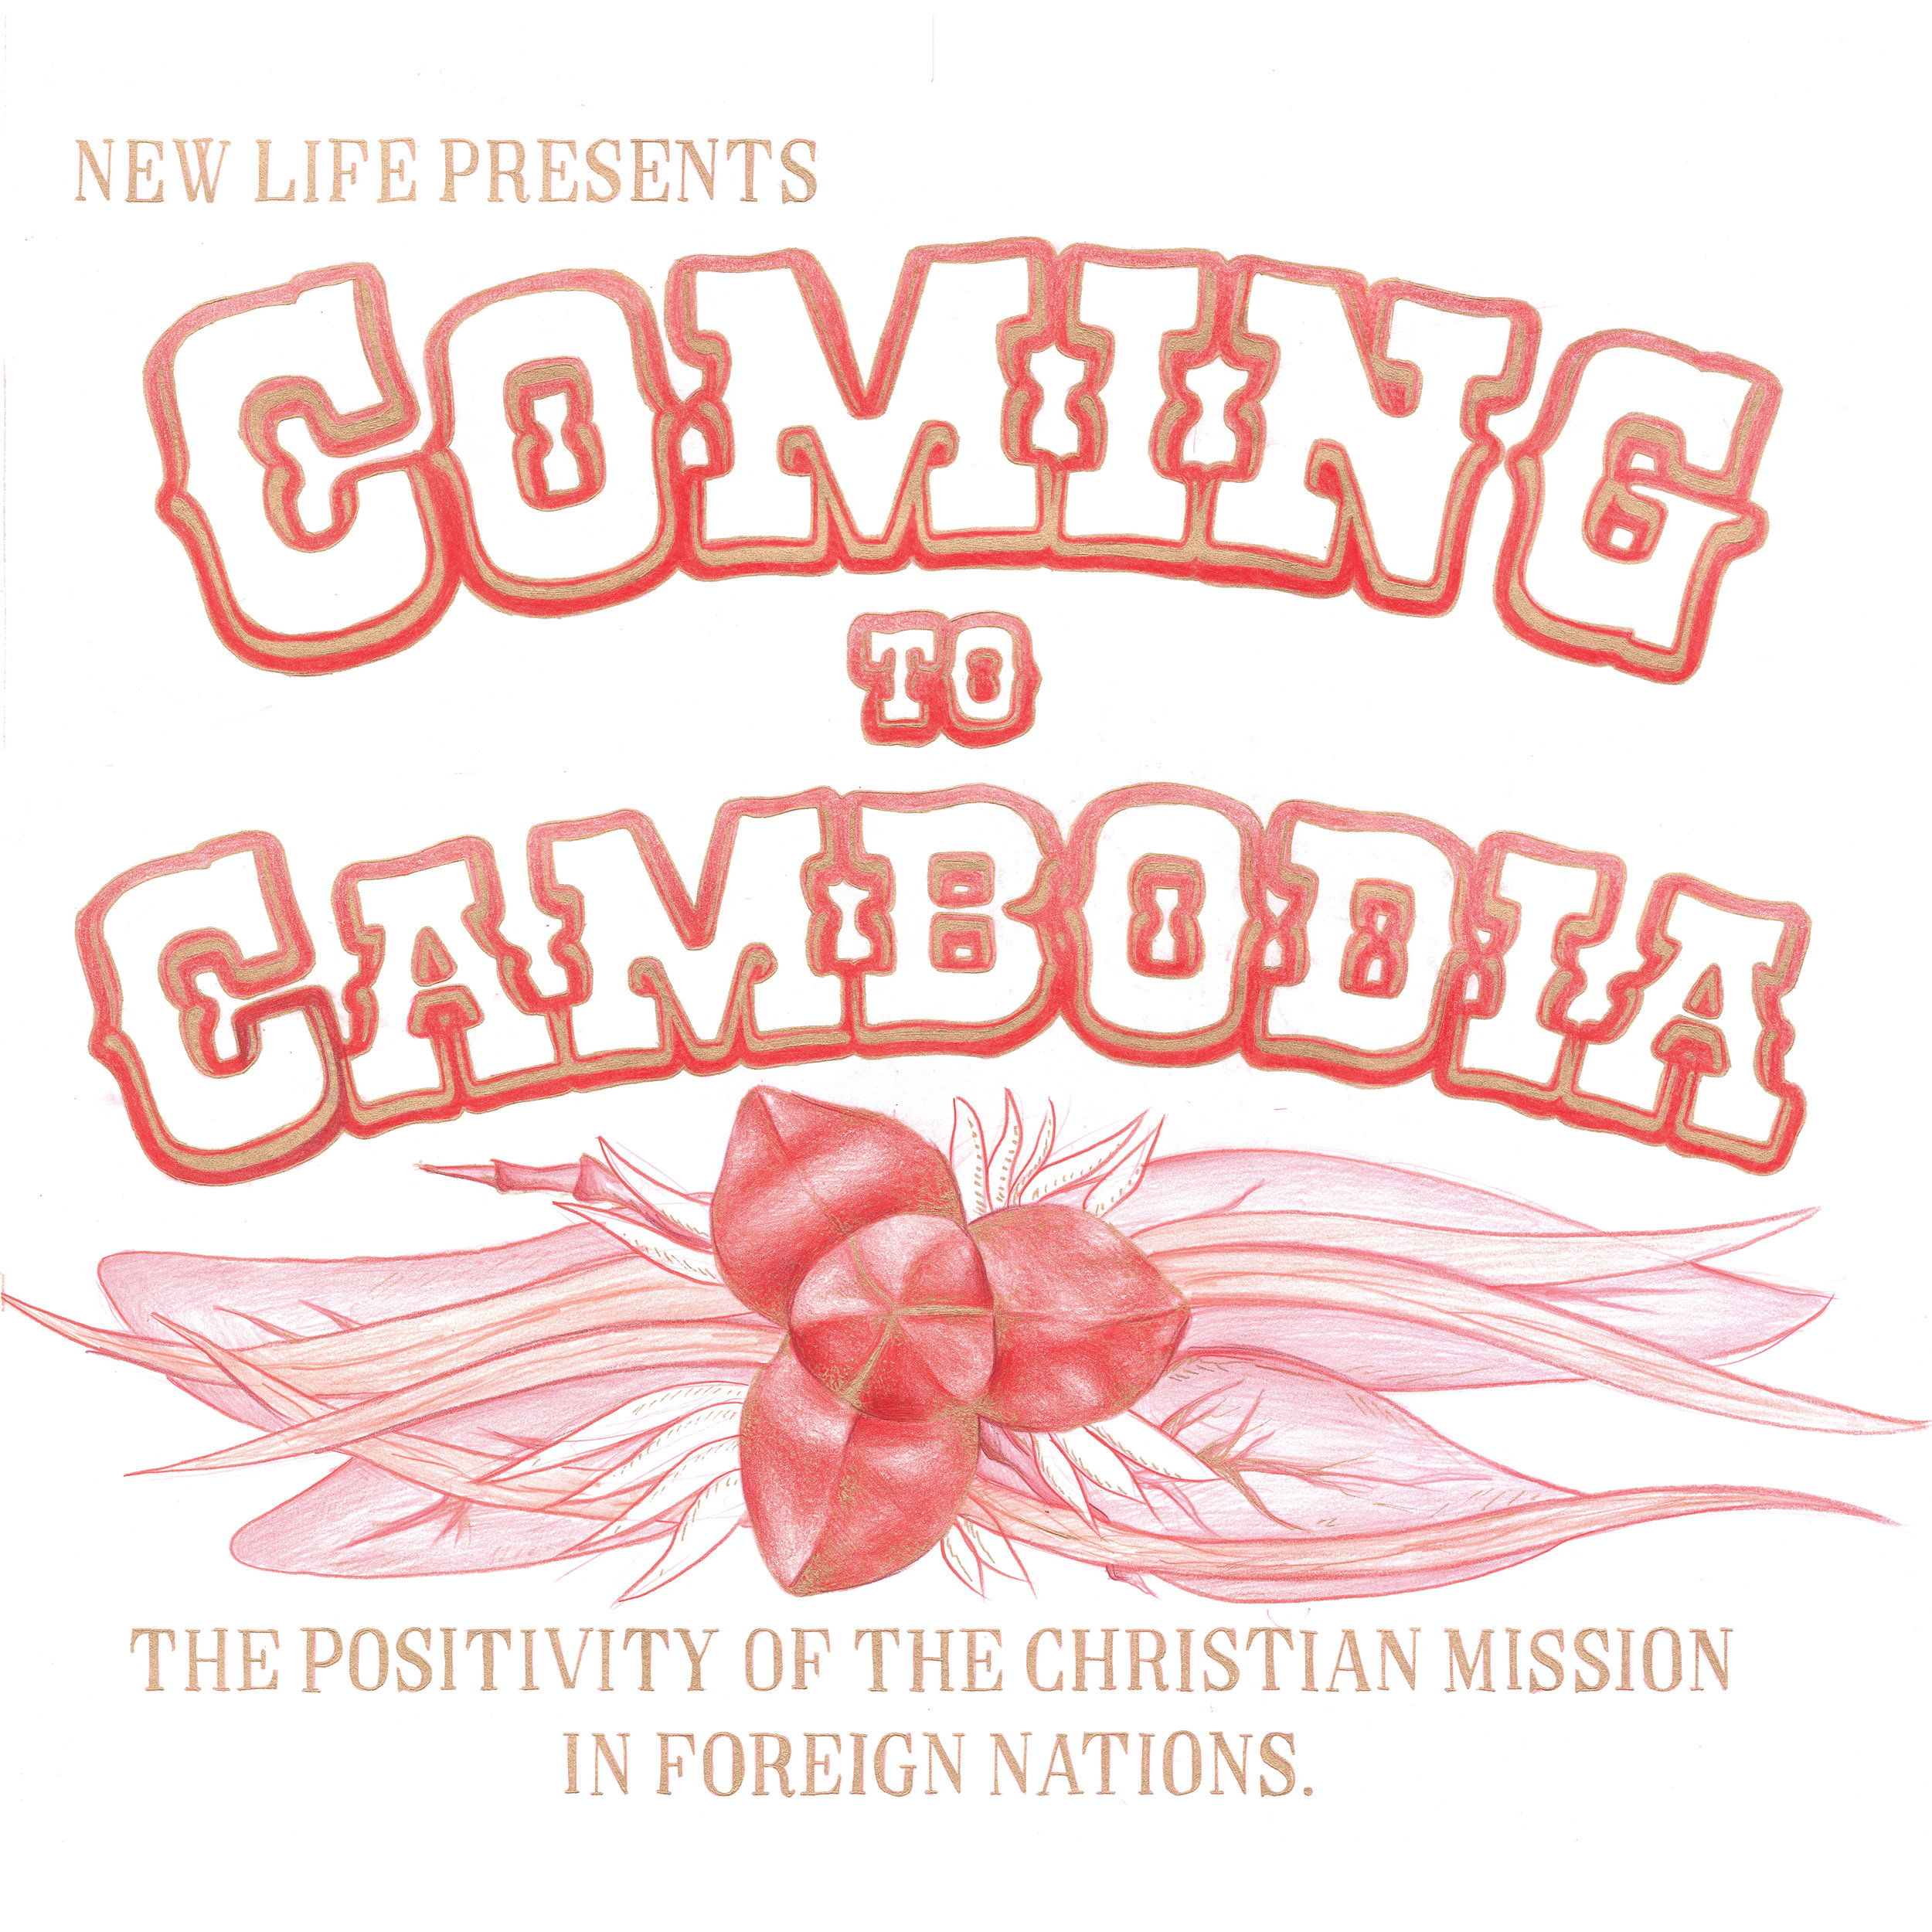 Coming to Cambodia